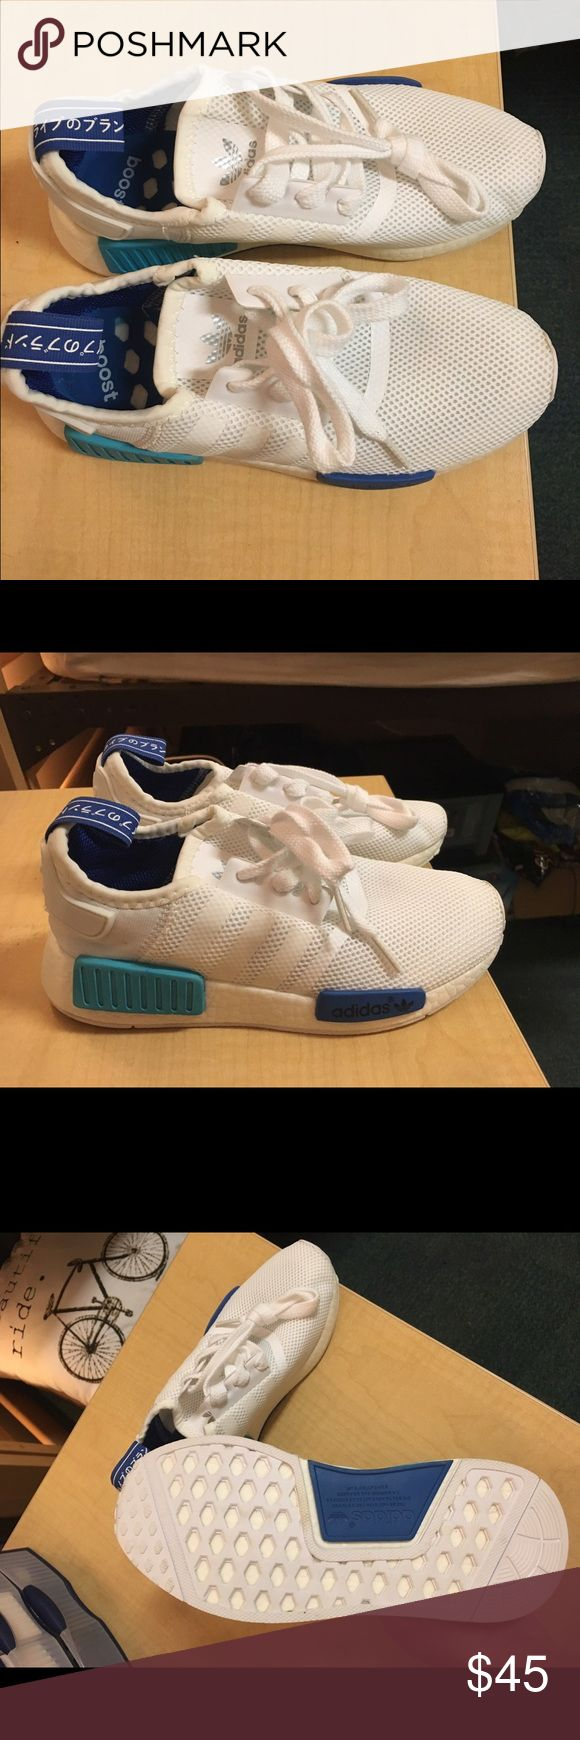 Never worn men's adidas sneakers Never worn, white adidas shoes, men's size 5 Adidas Shoes Athletic Shoes